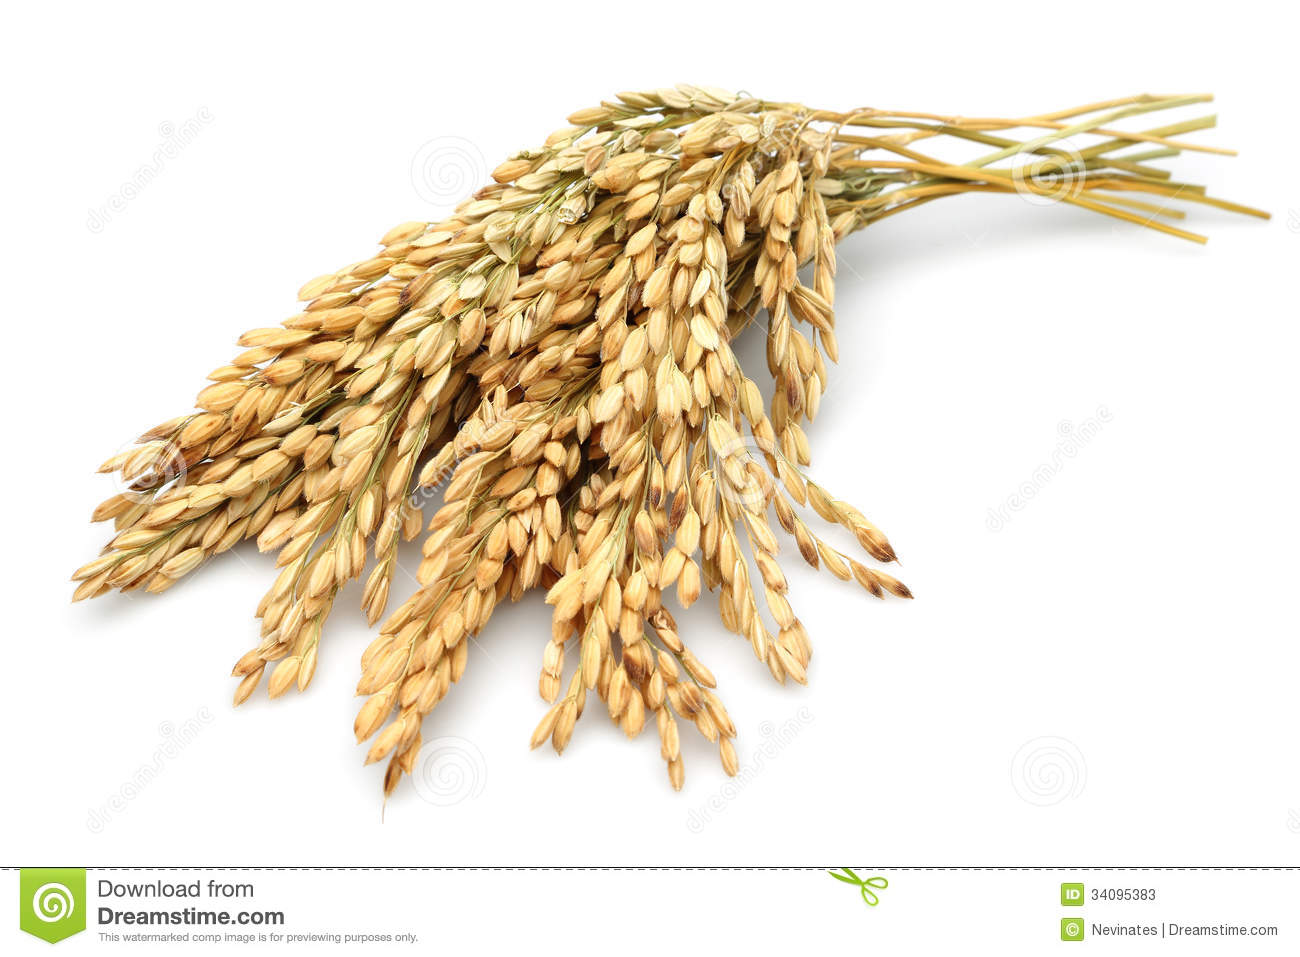 rice stalks stock images download 759 royalty free photos